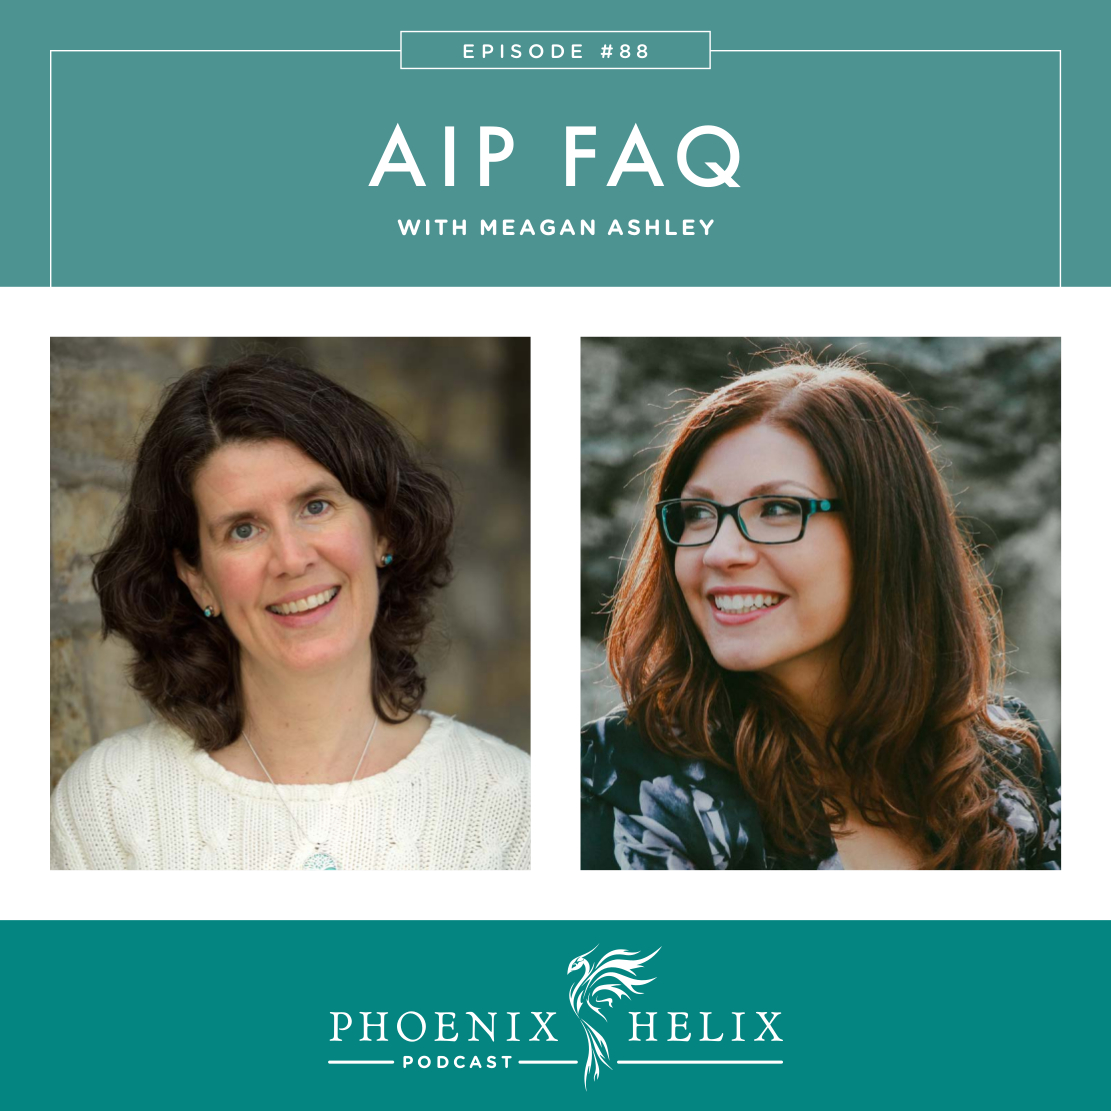 Best of the Phoenix Helix Podcast: AIP FAQ